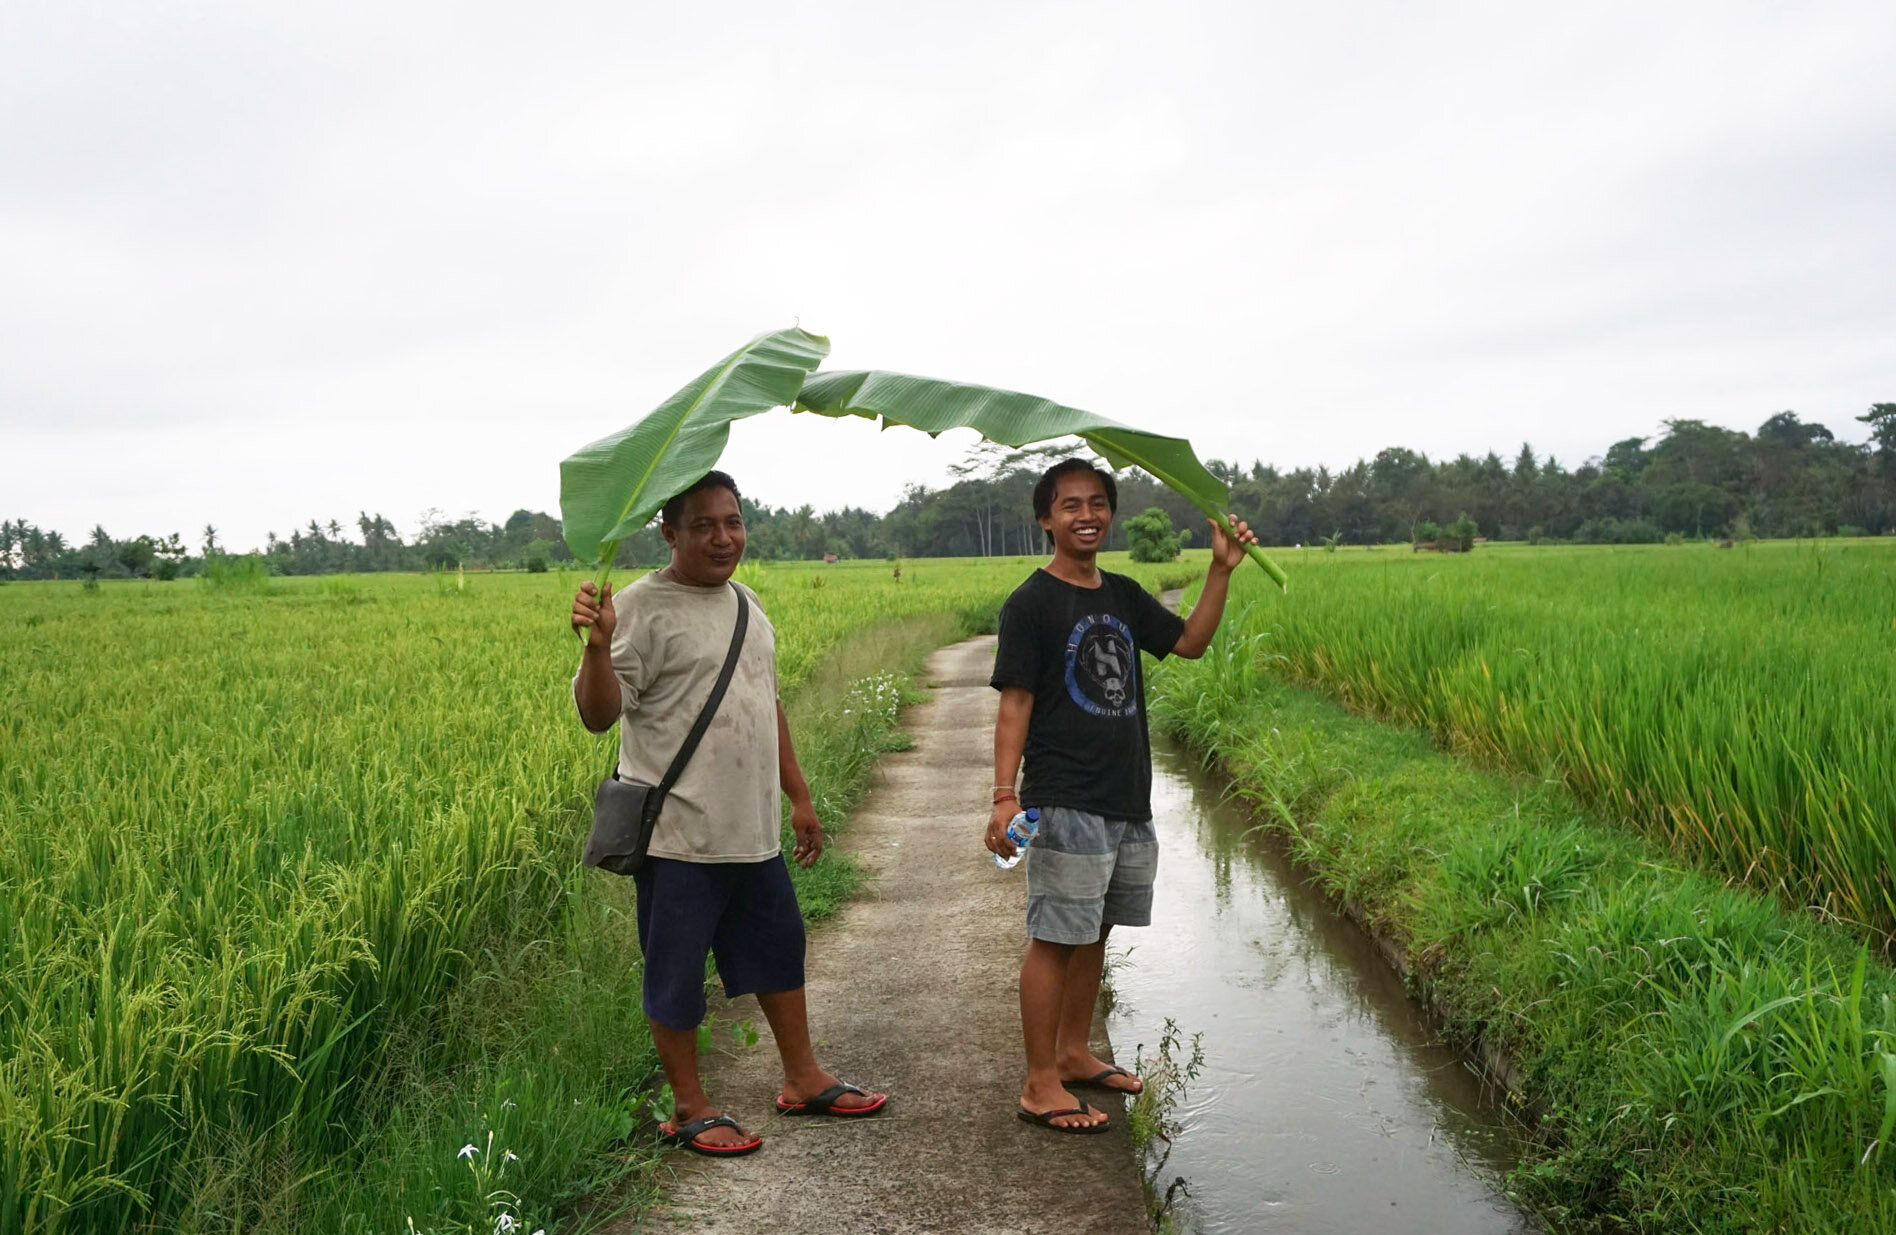 The host Wayan and local contact Bhuana using banana leaves as umbrellas.